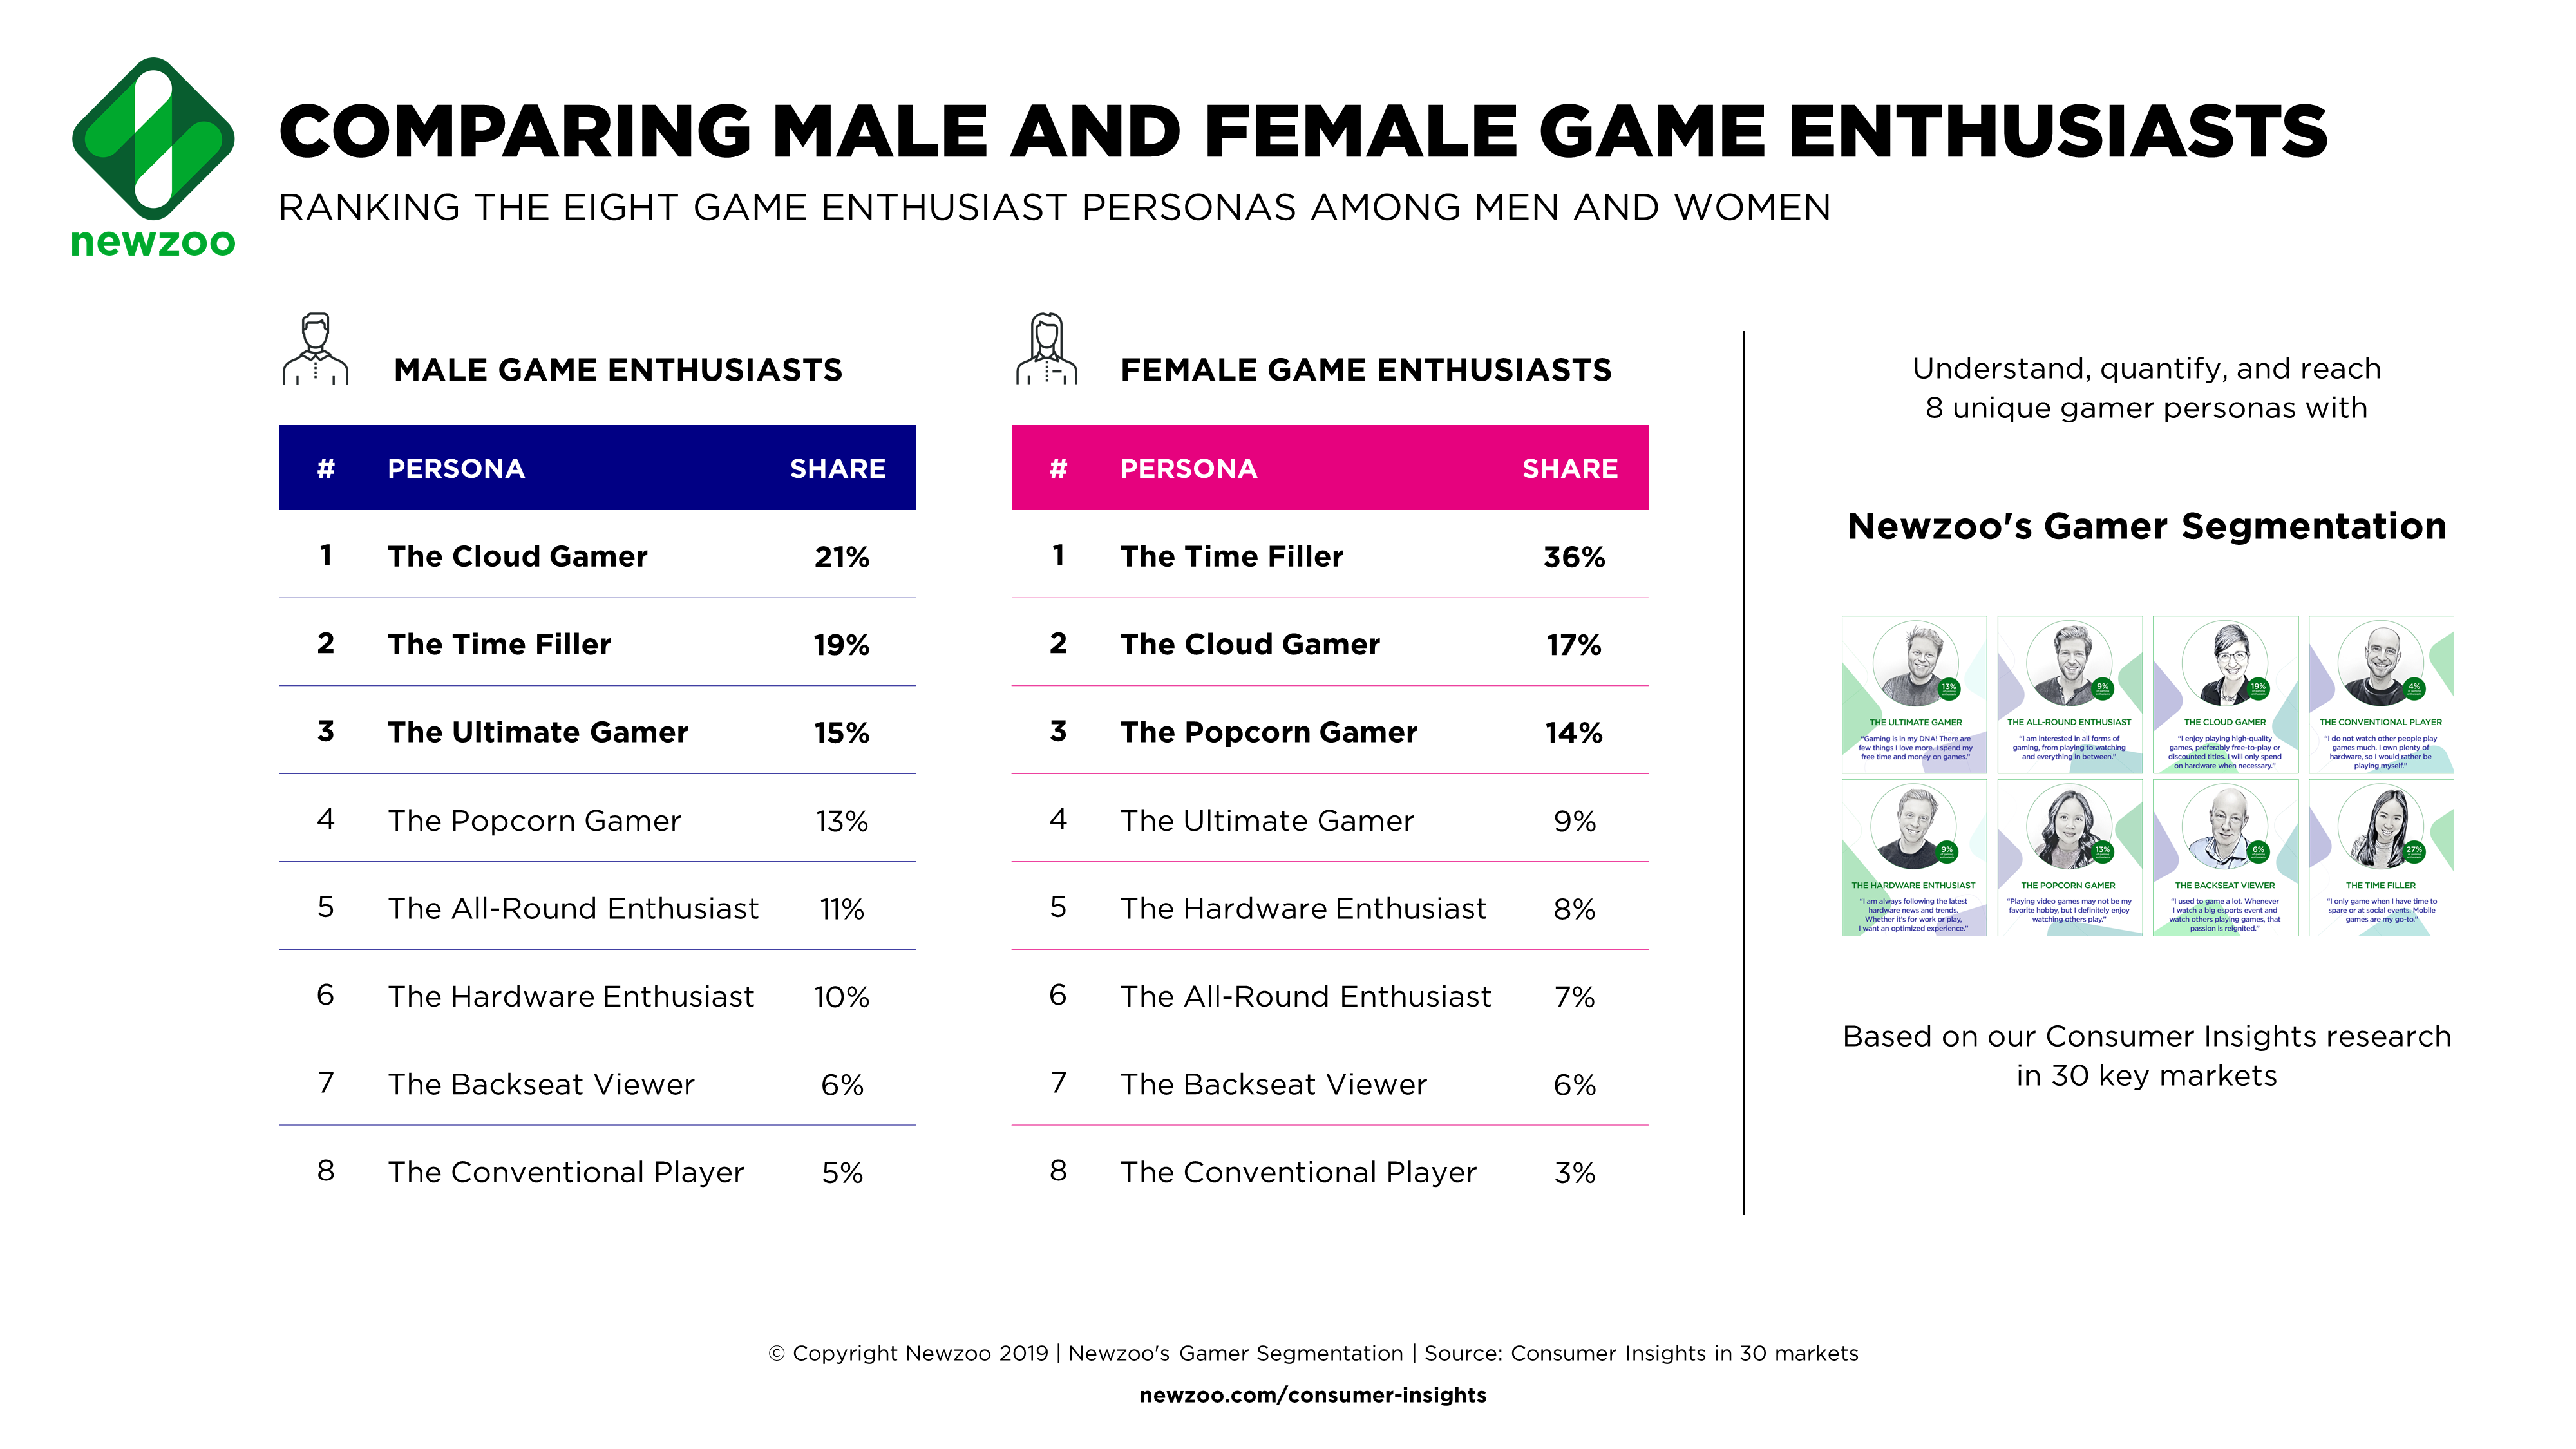 Women Account for 46% of All Game Enthusiasts: Watching Game